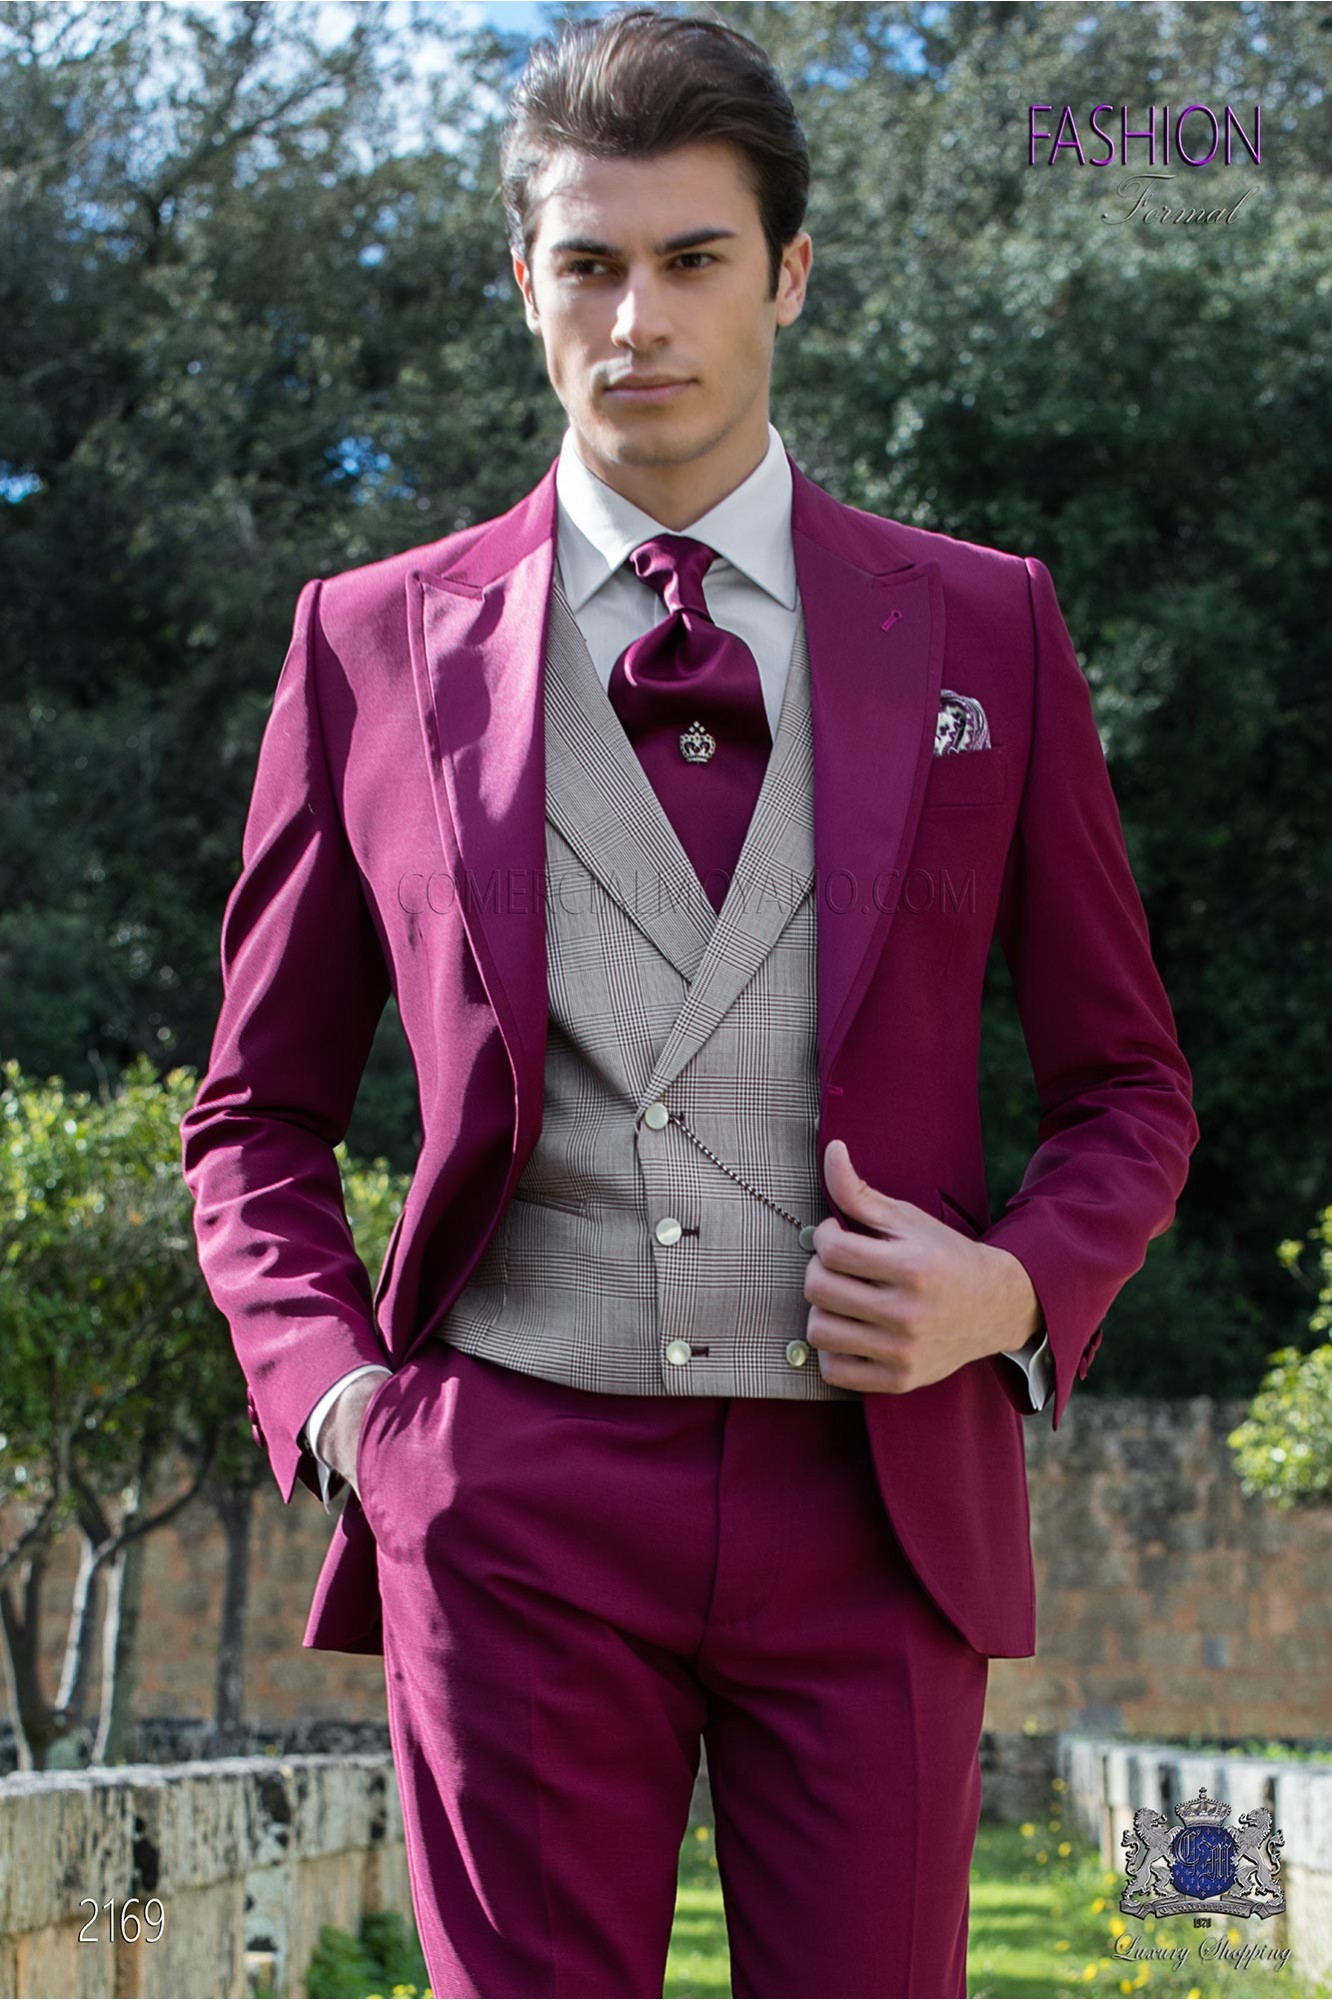 Italian wedding suit Slim stylish cut. Peak lapel with contrast fabric piping. Made from wool and acetate fabric in Burgundy model 2169 Ottavio Nuccio Gala